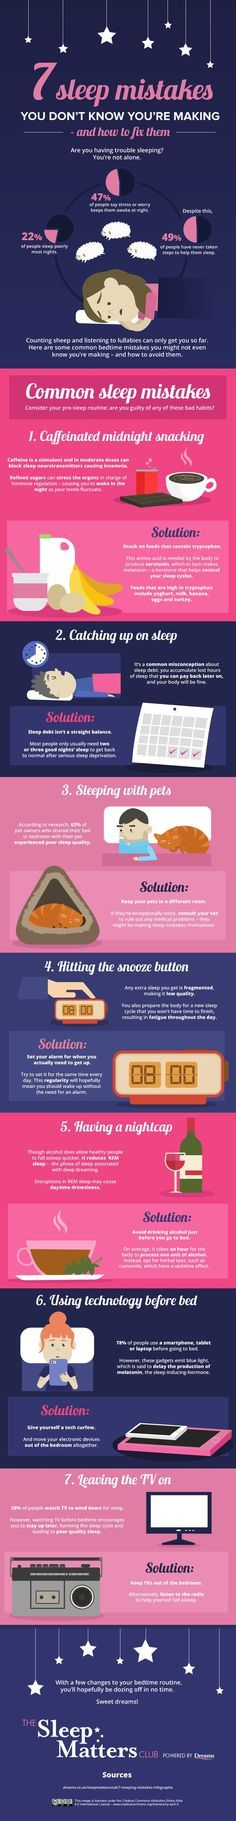 #sleep #healthy #infographic #mistakes #positions #couple #nap #shower #tips #funny #humor #deprivation